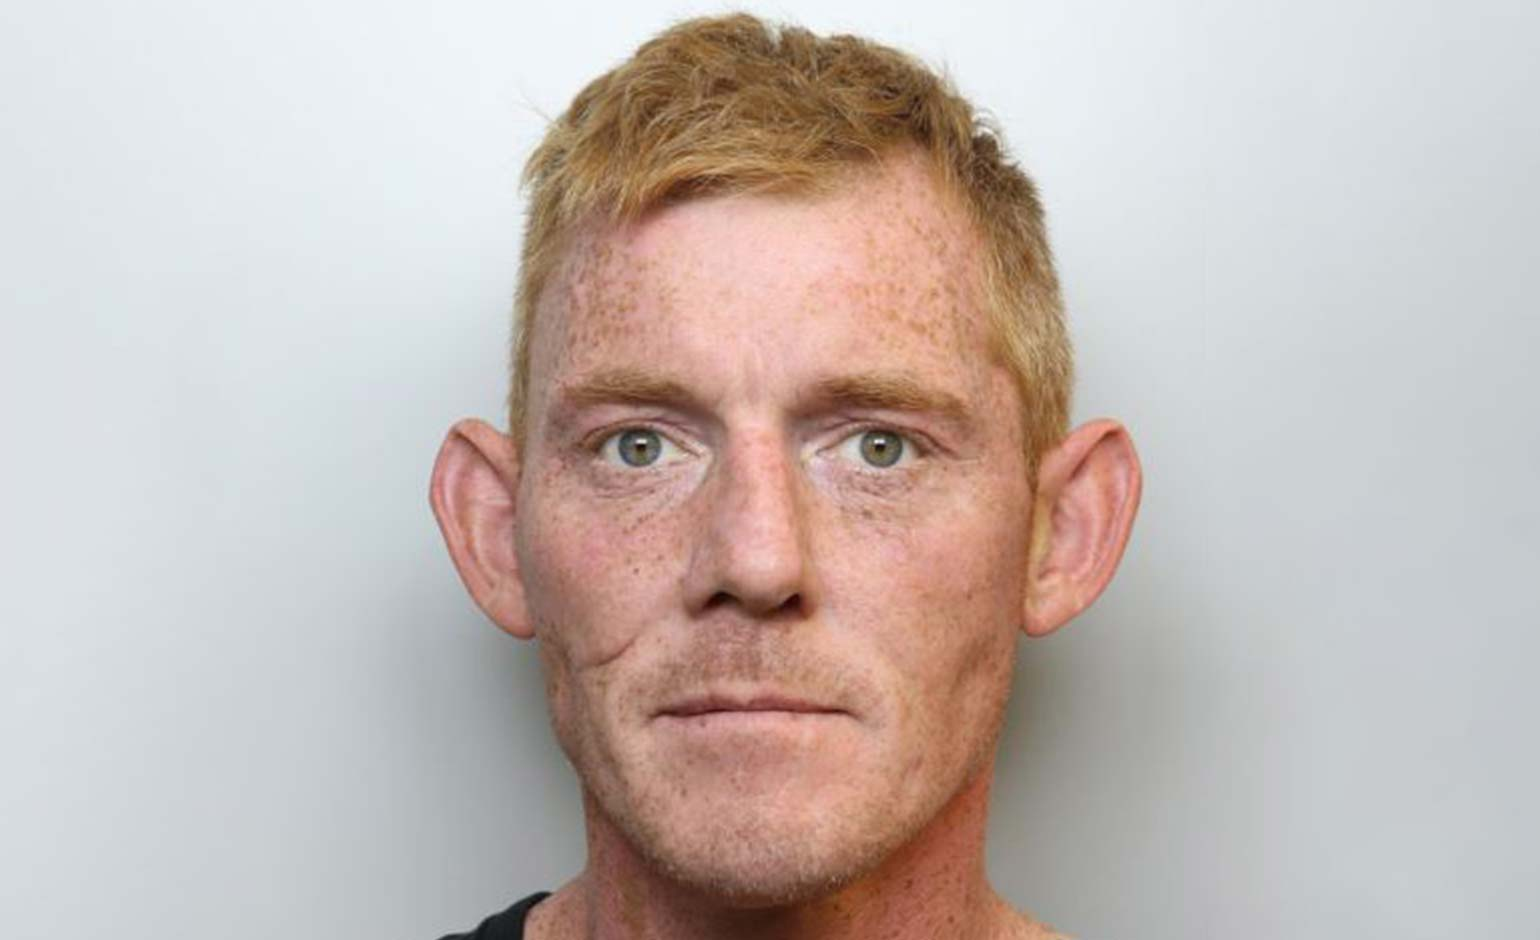 Police appeal for help to trace wanted man who may have travelled to Bath